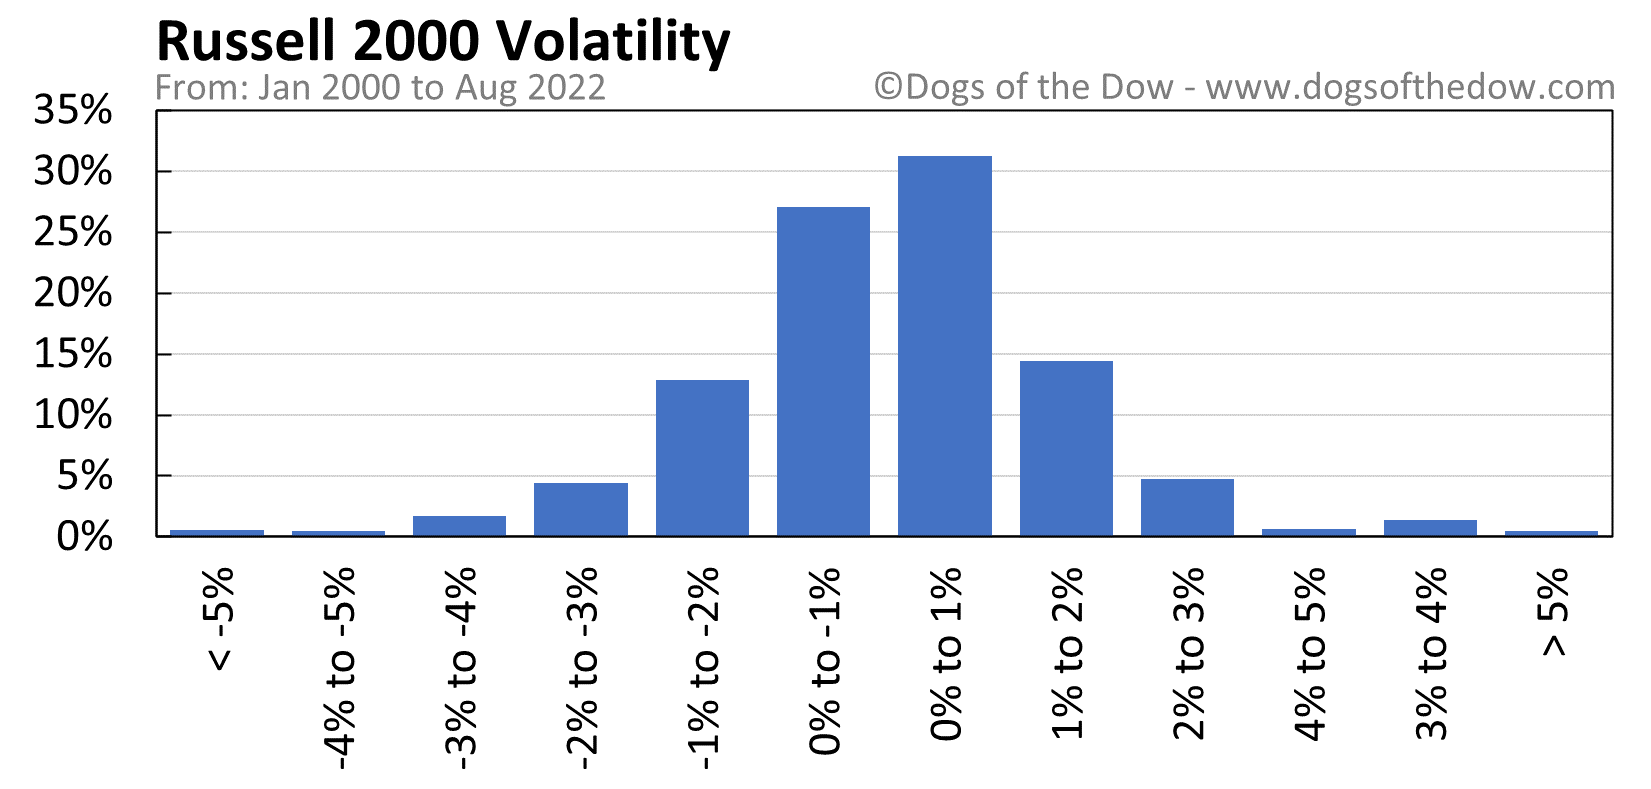 Russell 2000 volatility chart